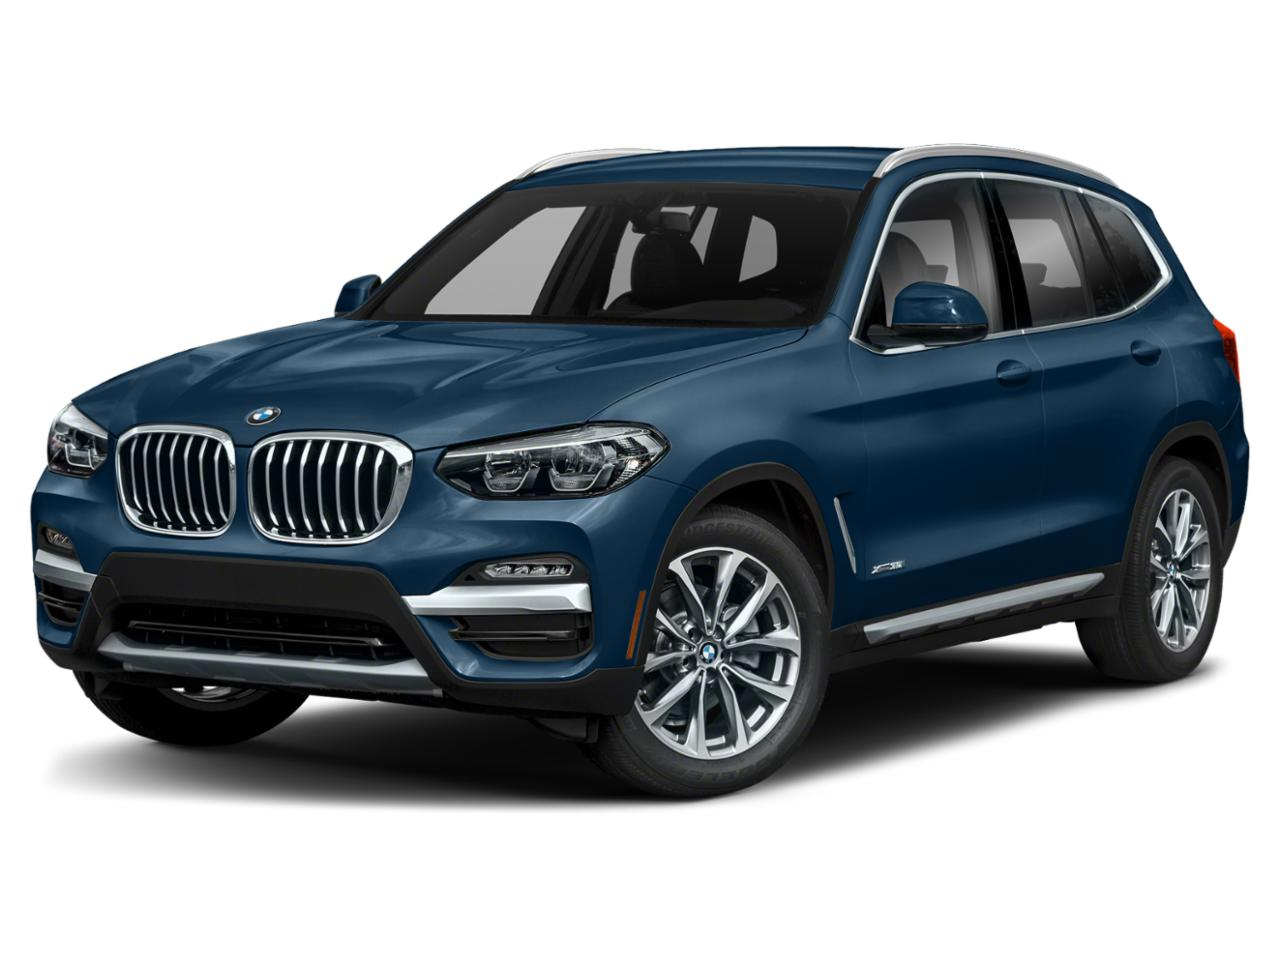 2018 BMW X3 xDrive30i Vehicle Photo in Spokane, WA 99207